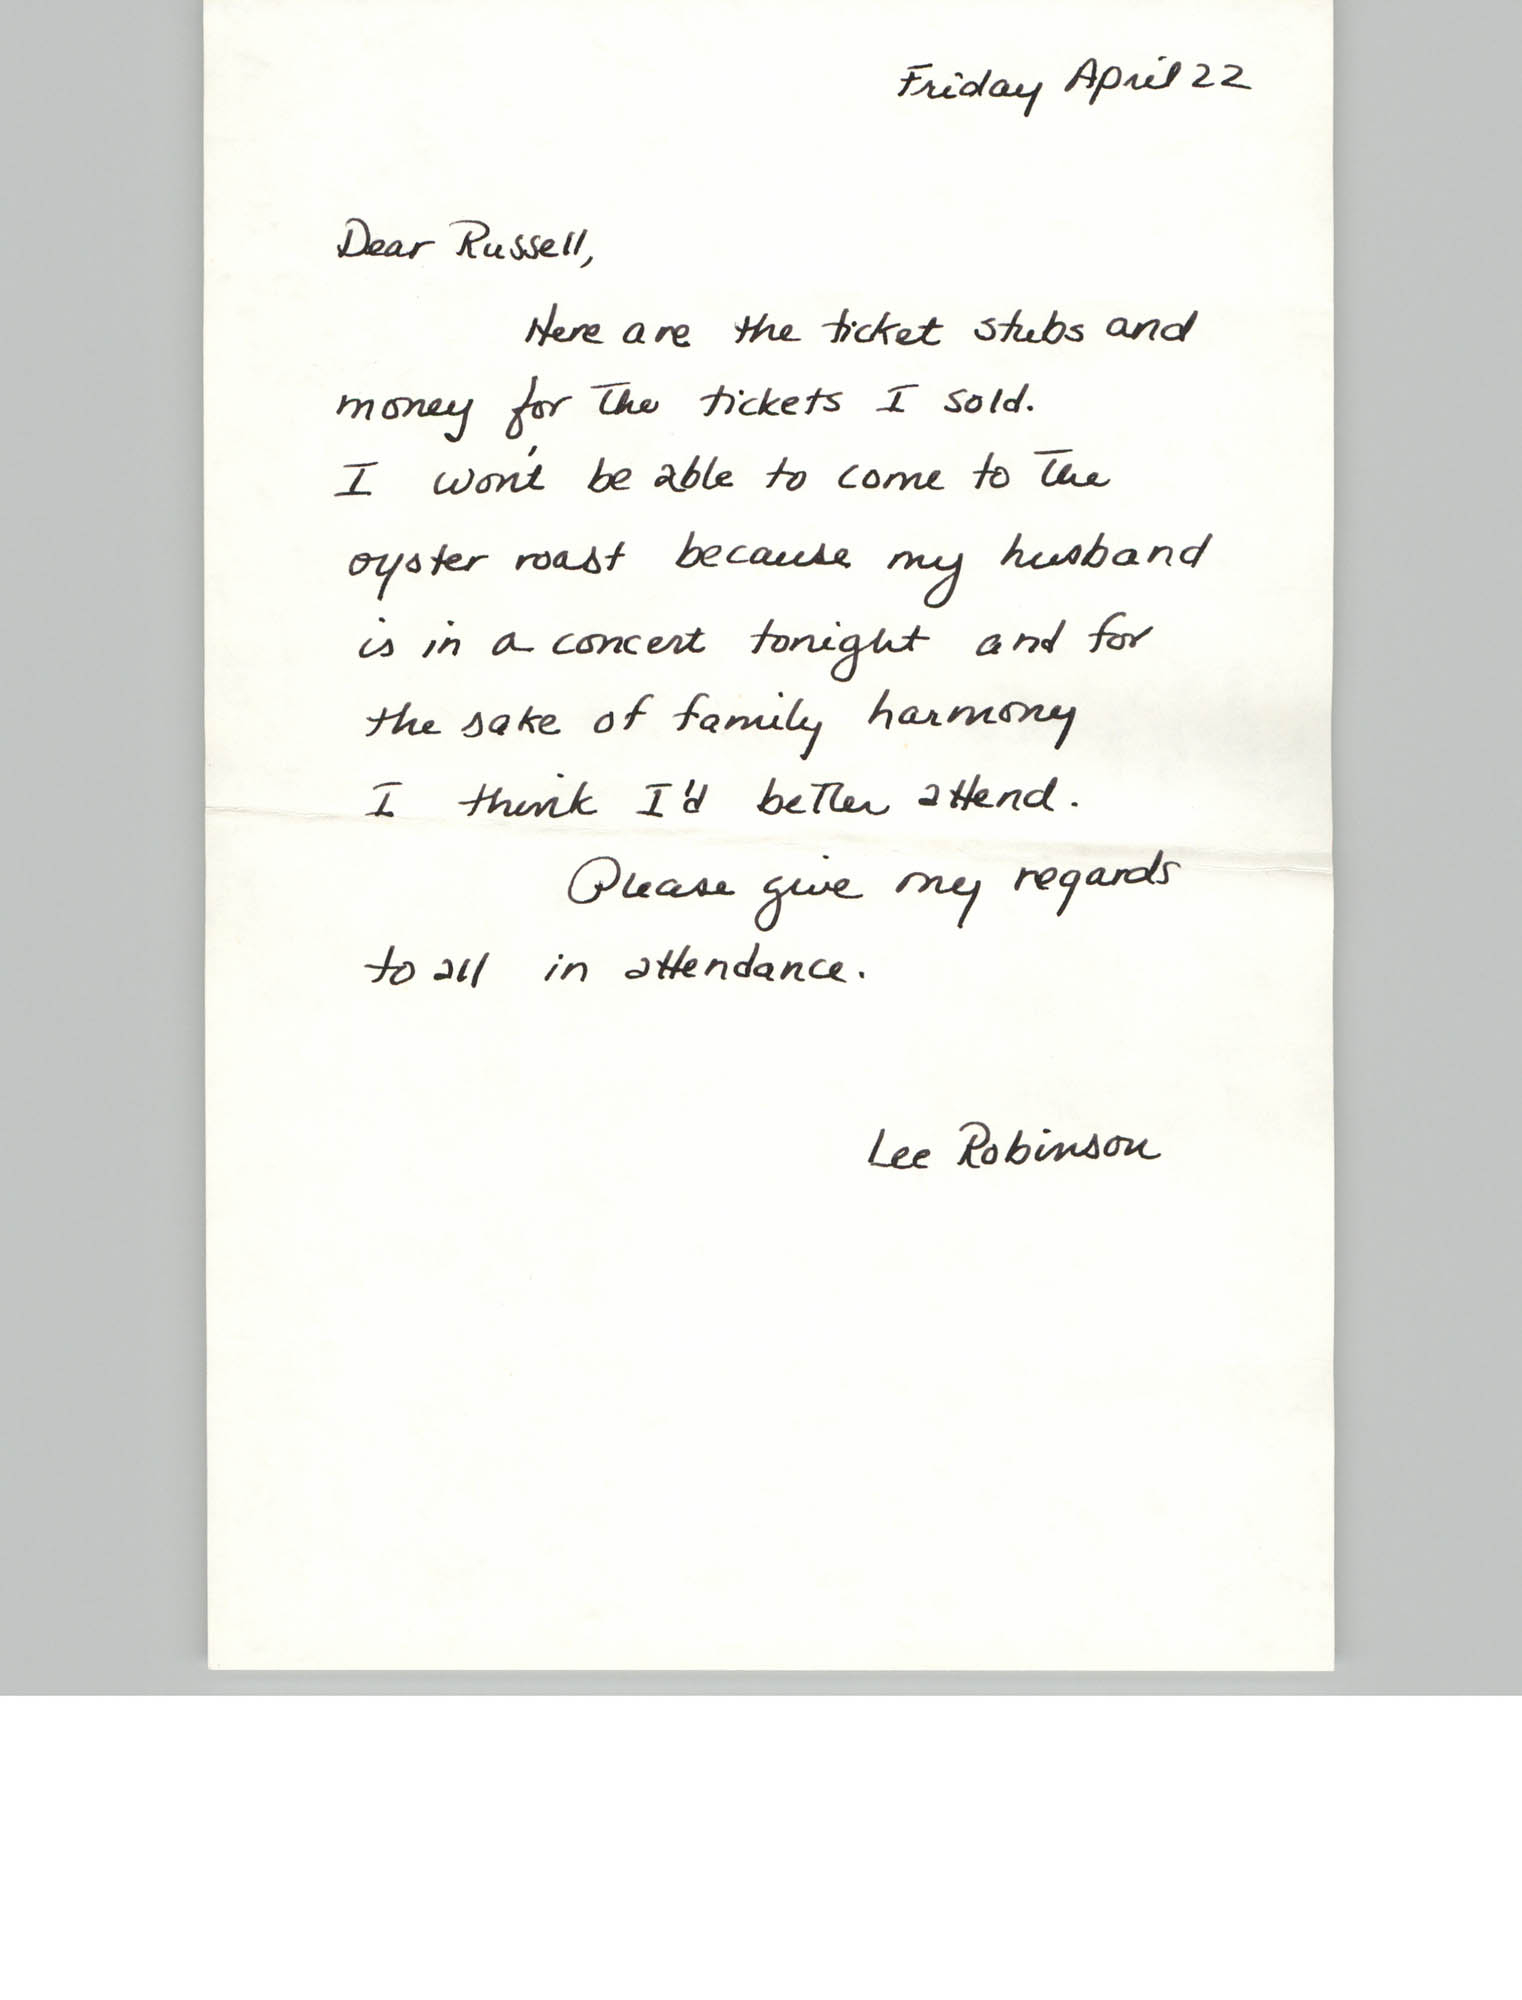 Handwritten letter from Lee Robinson to Russell Brown, April 22